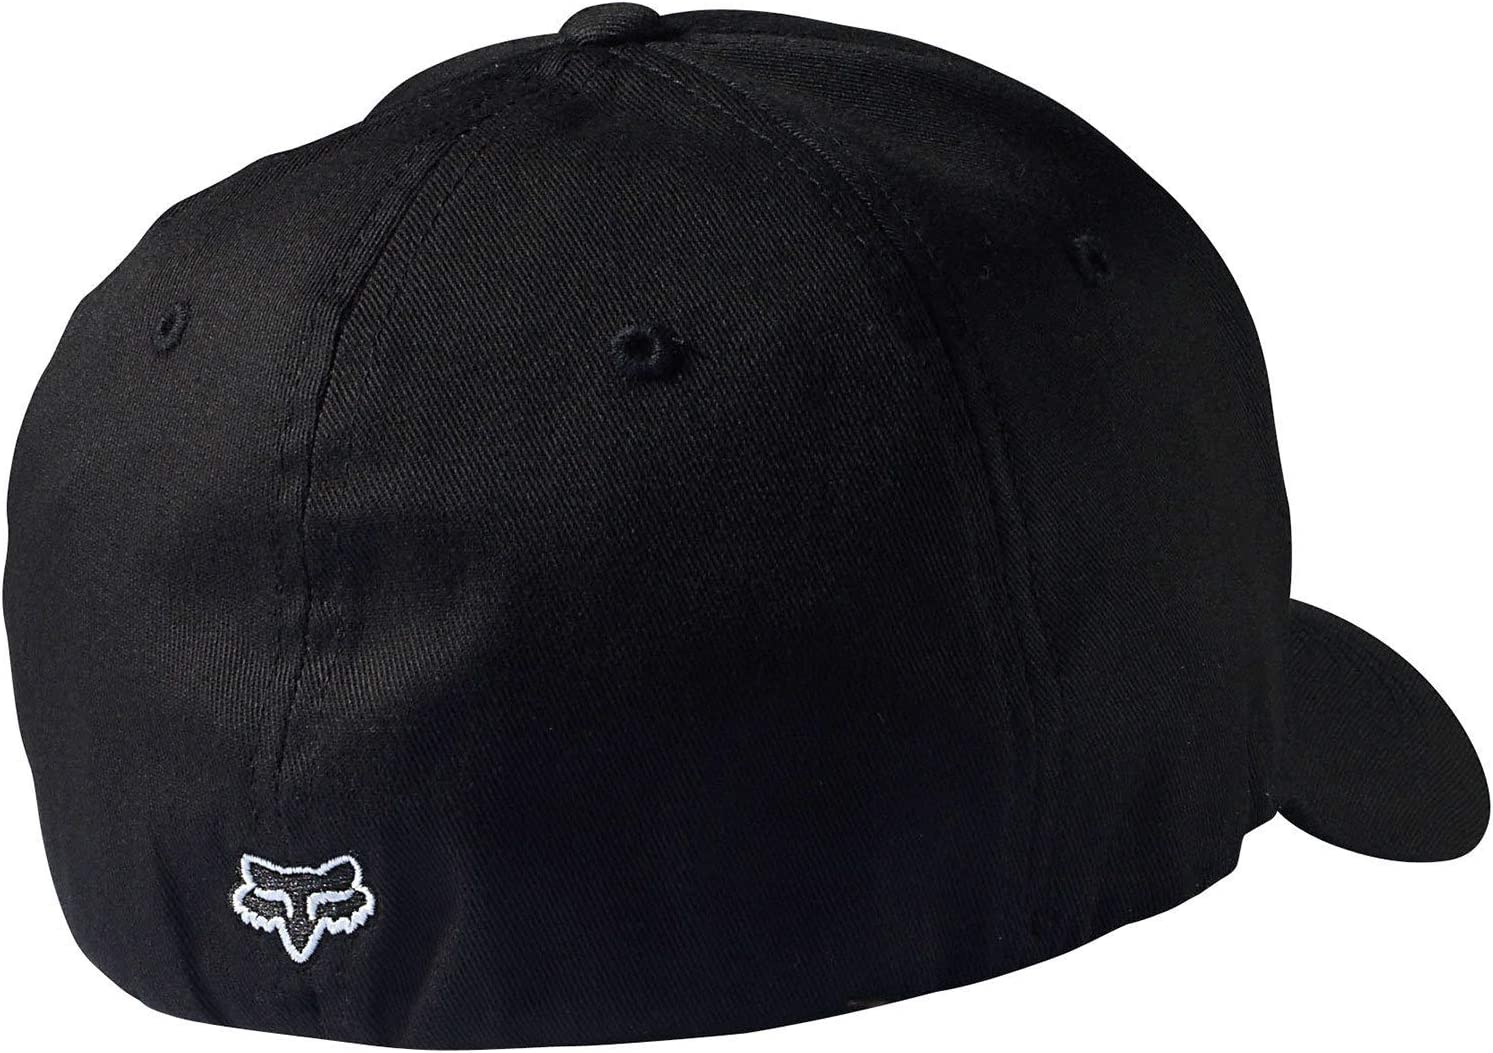 Kids 58231-Black-One Size Fox Racing Youth Legacy Flexfit Hat//Cap Black One Size Fox Head